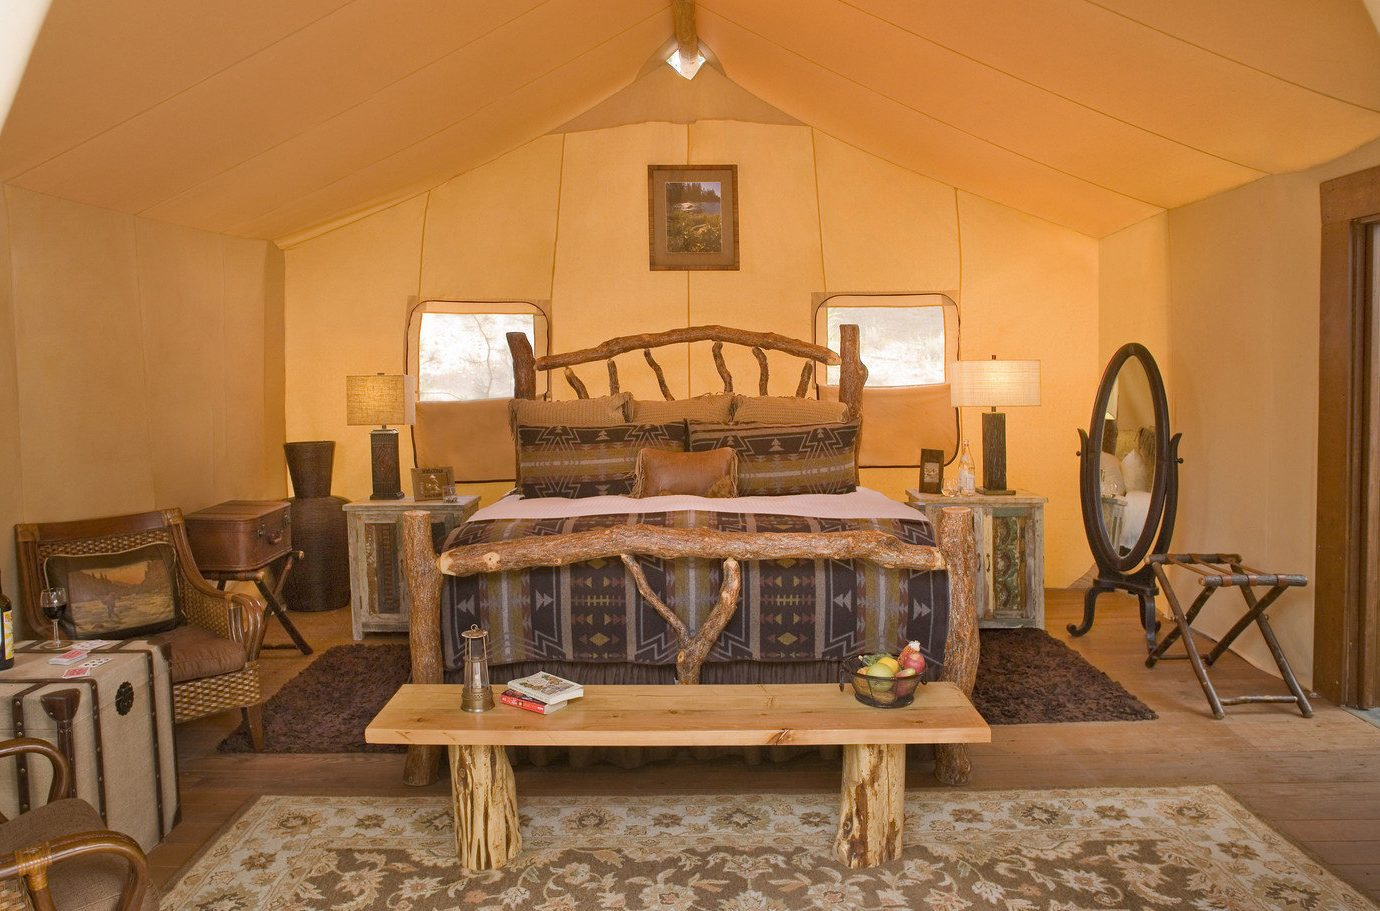 Bedroom Glamping Luxury Nature Outdoors Outdoors + Adventure remote Road Trips Rustic tent tents Trip Ideas Weekend Getaways wilderness wall indoor floor ceiling room property Living living room estate home furniture cottage interior design wooden dining room Villa farmhouse mansion wood real estate Suite area